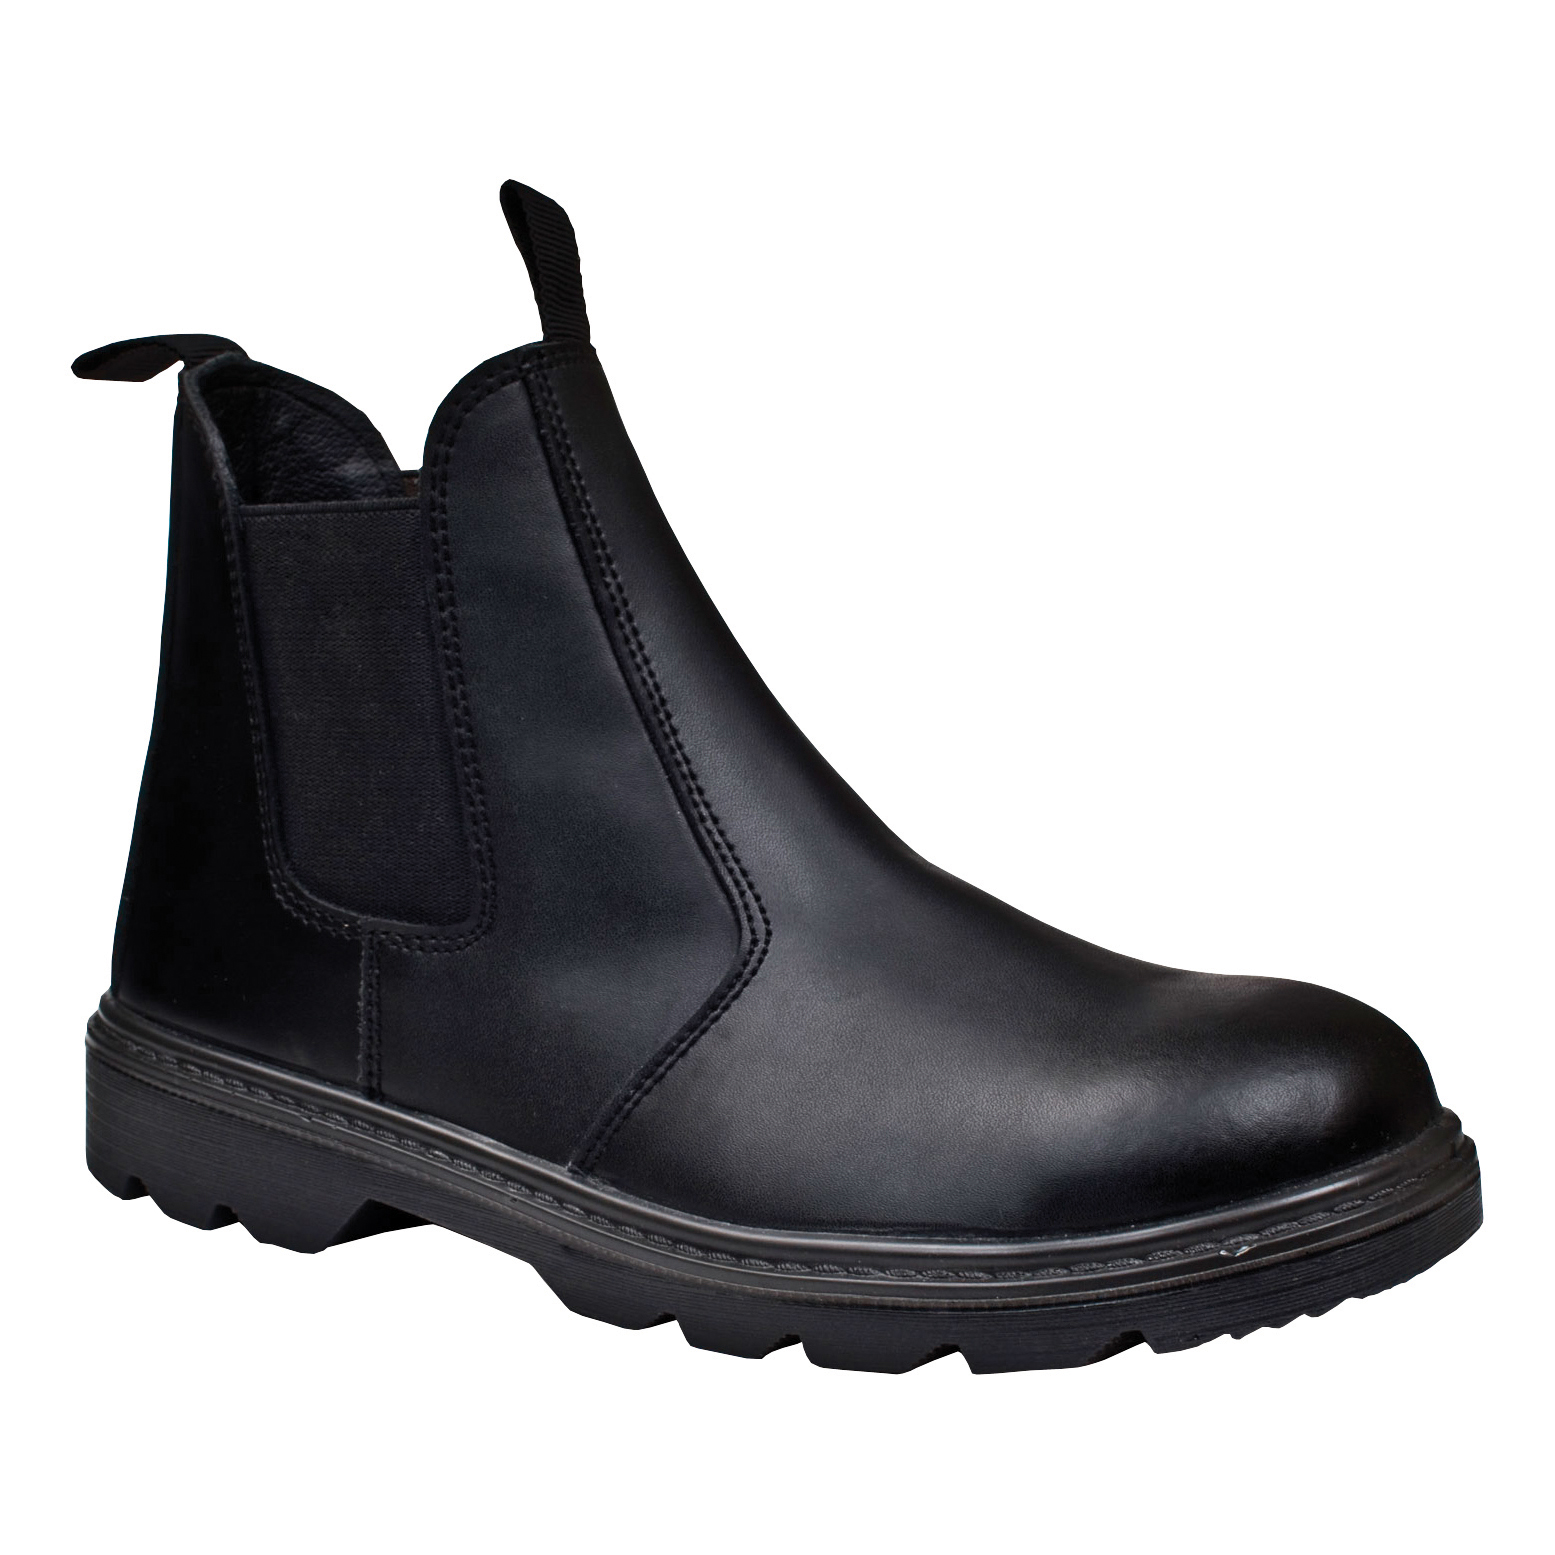 Click Footwear Dealer Boot PU/Leather Steel Toecap Size 11 Black Ref CF16BL11 *Approx 3 Day Leadtime*